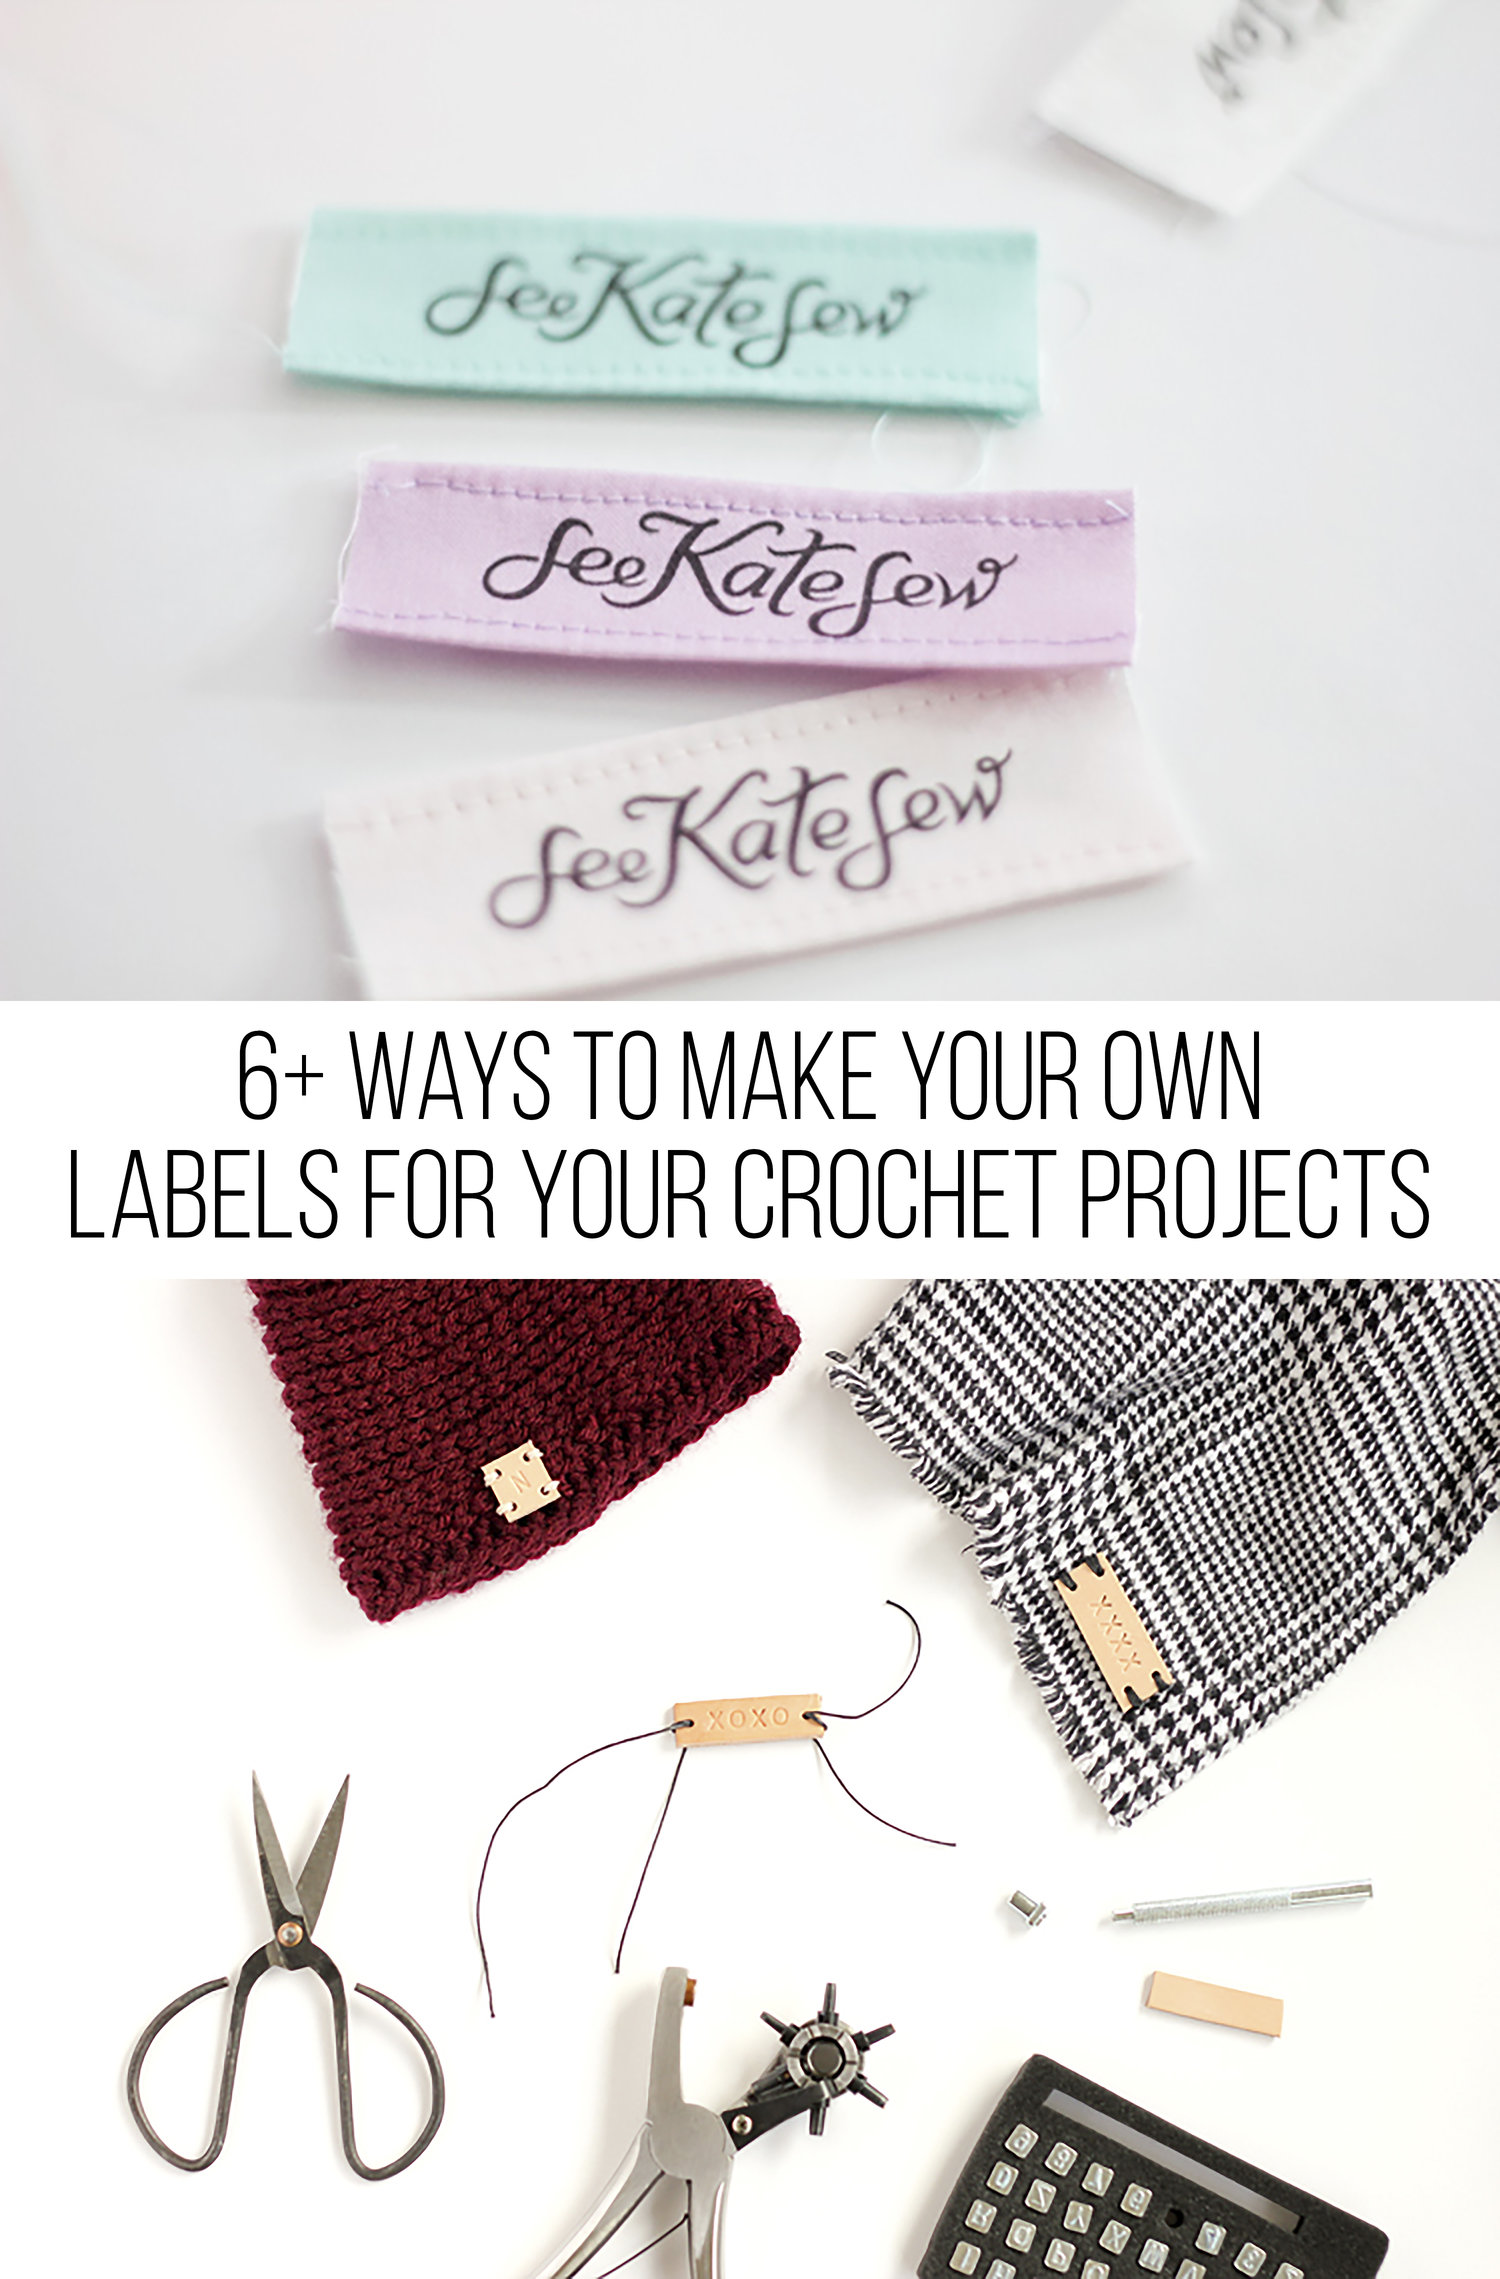 6 Ways To Make Your Own Labels For Crochet Projects Megmade With Love